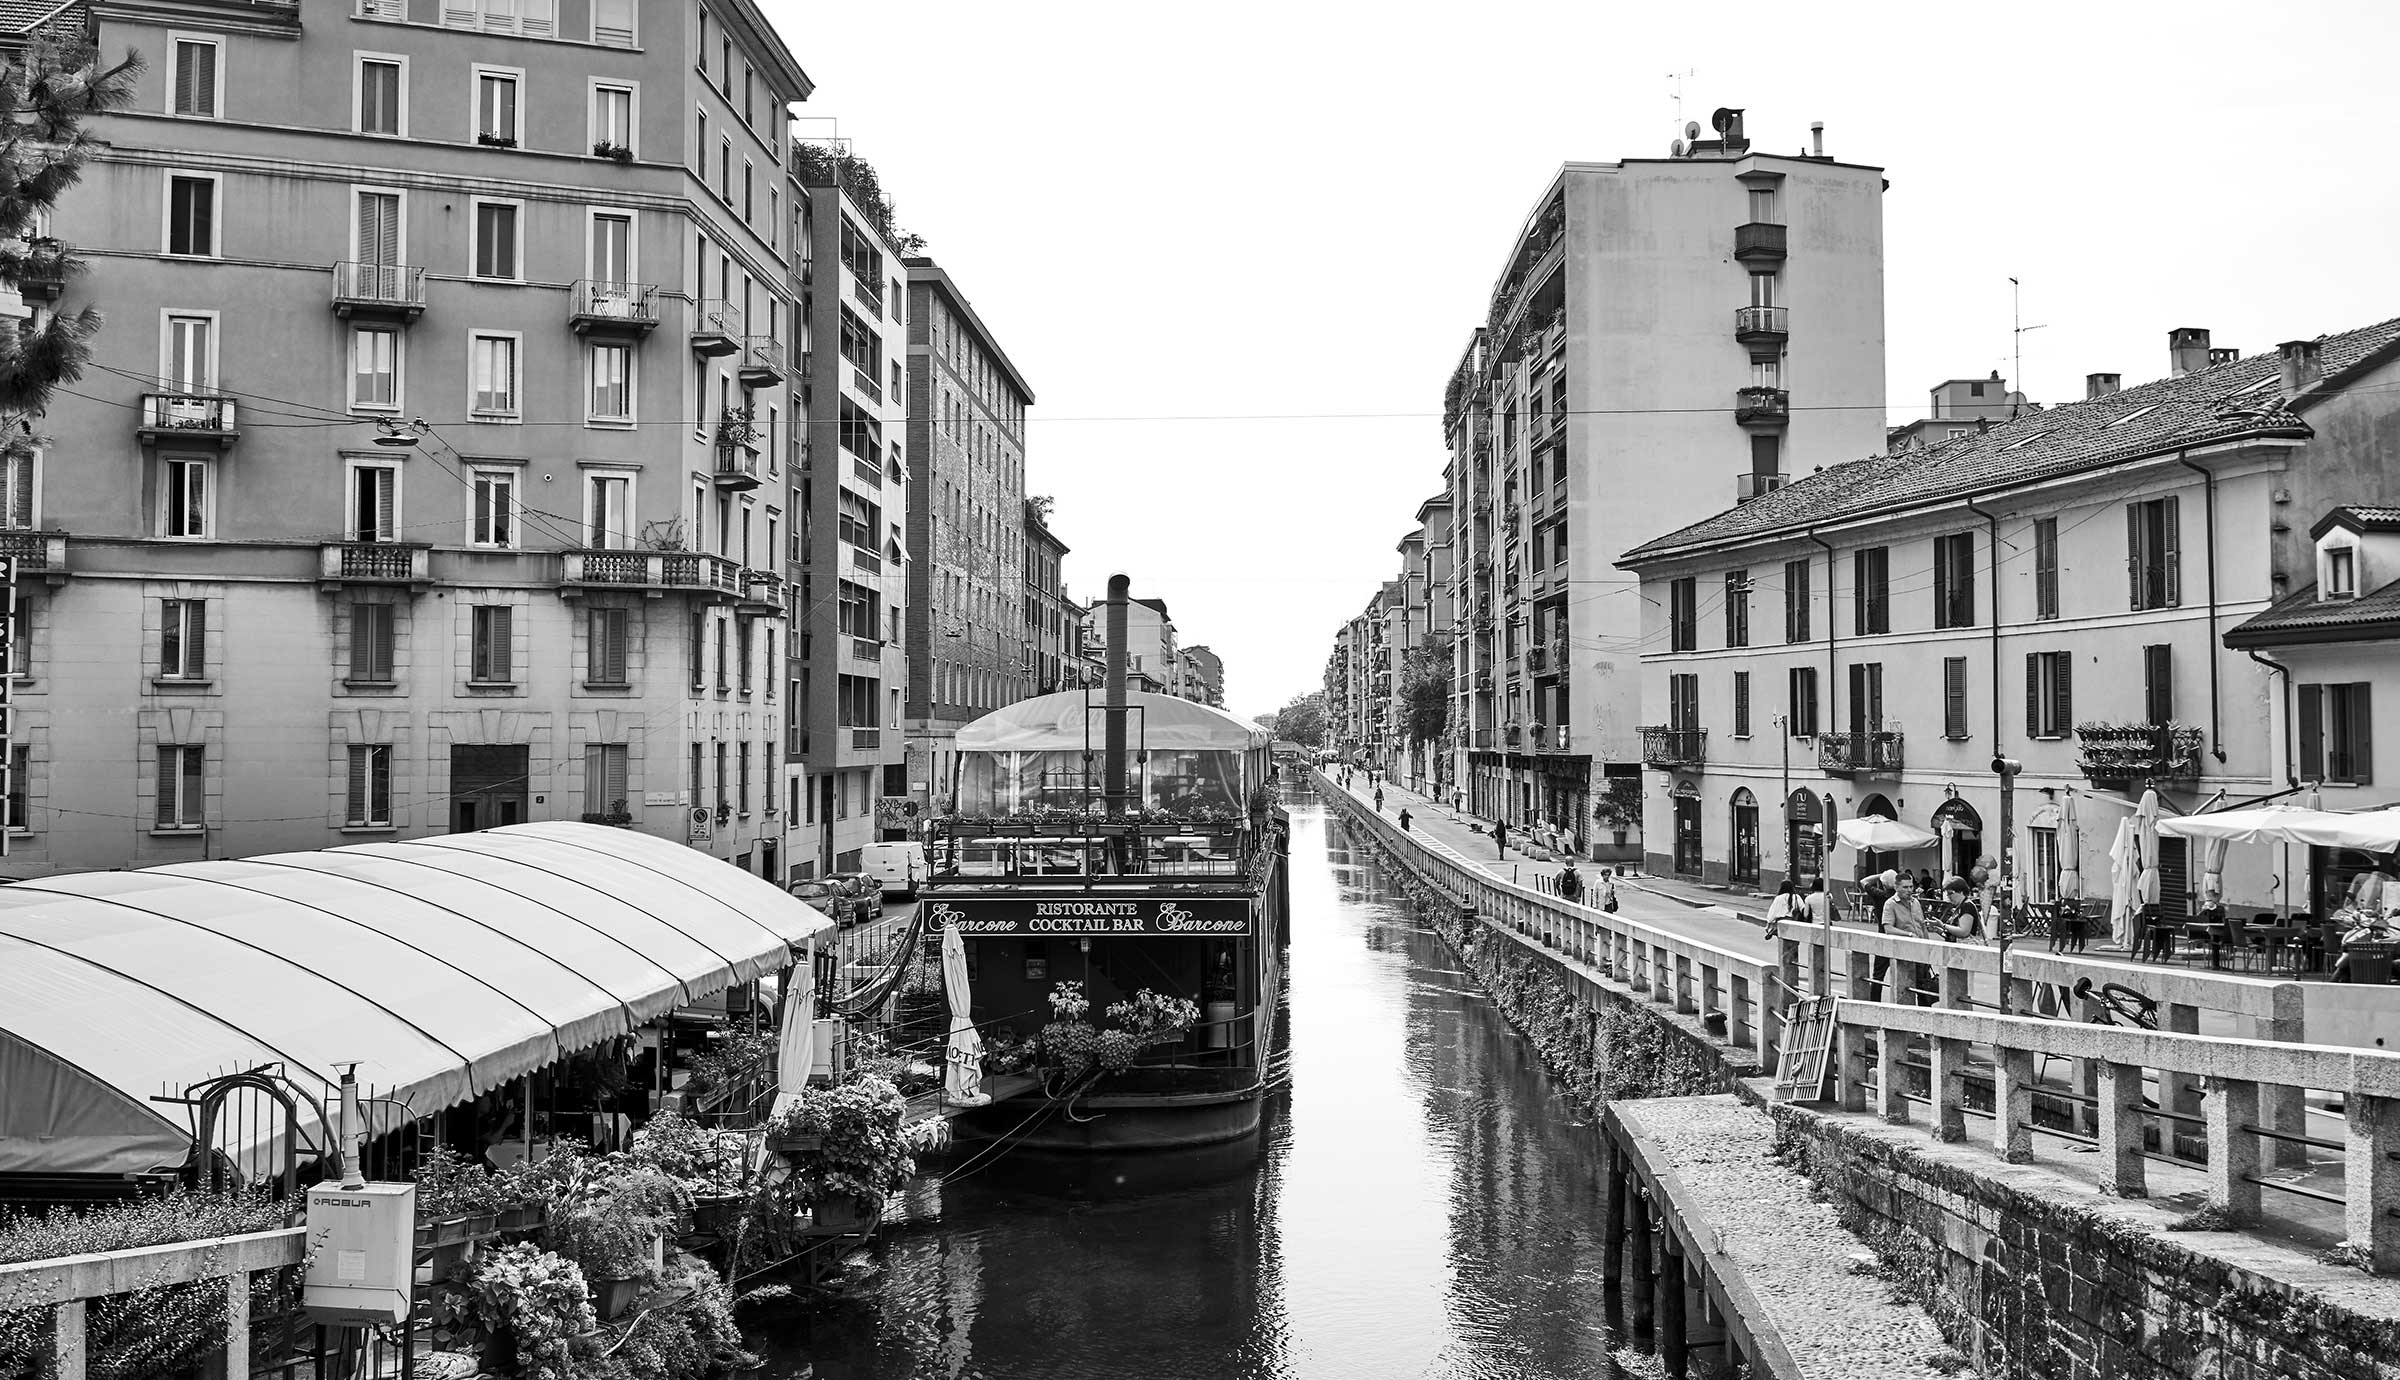 Milan scenery with buildings and boat along a canal